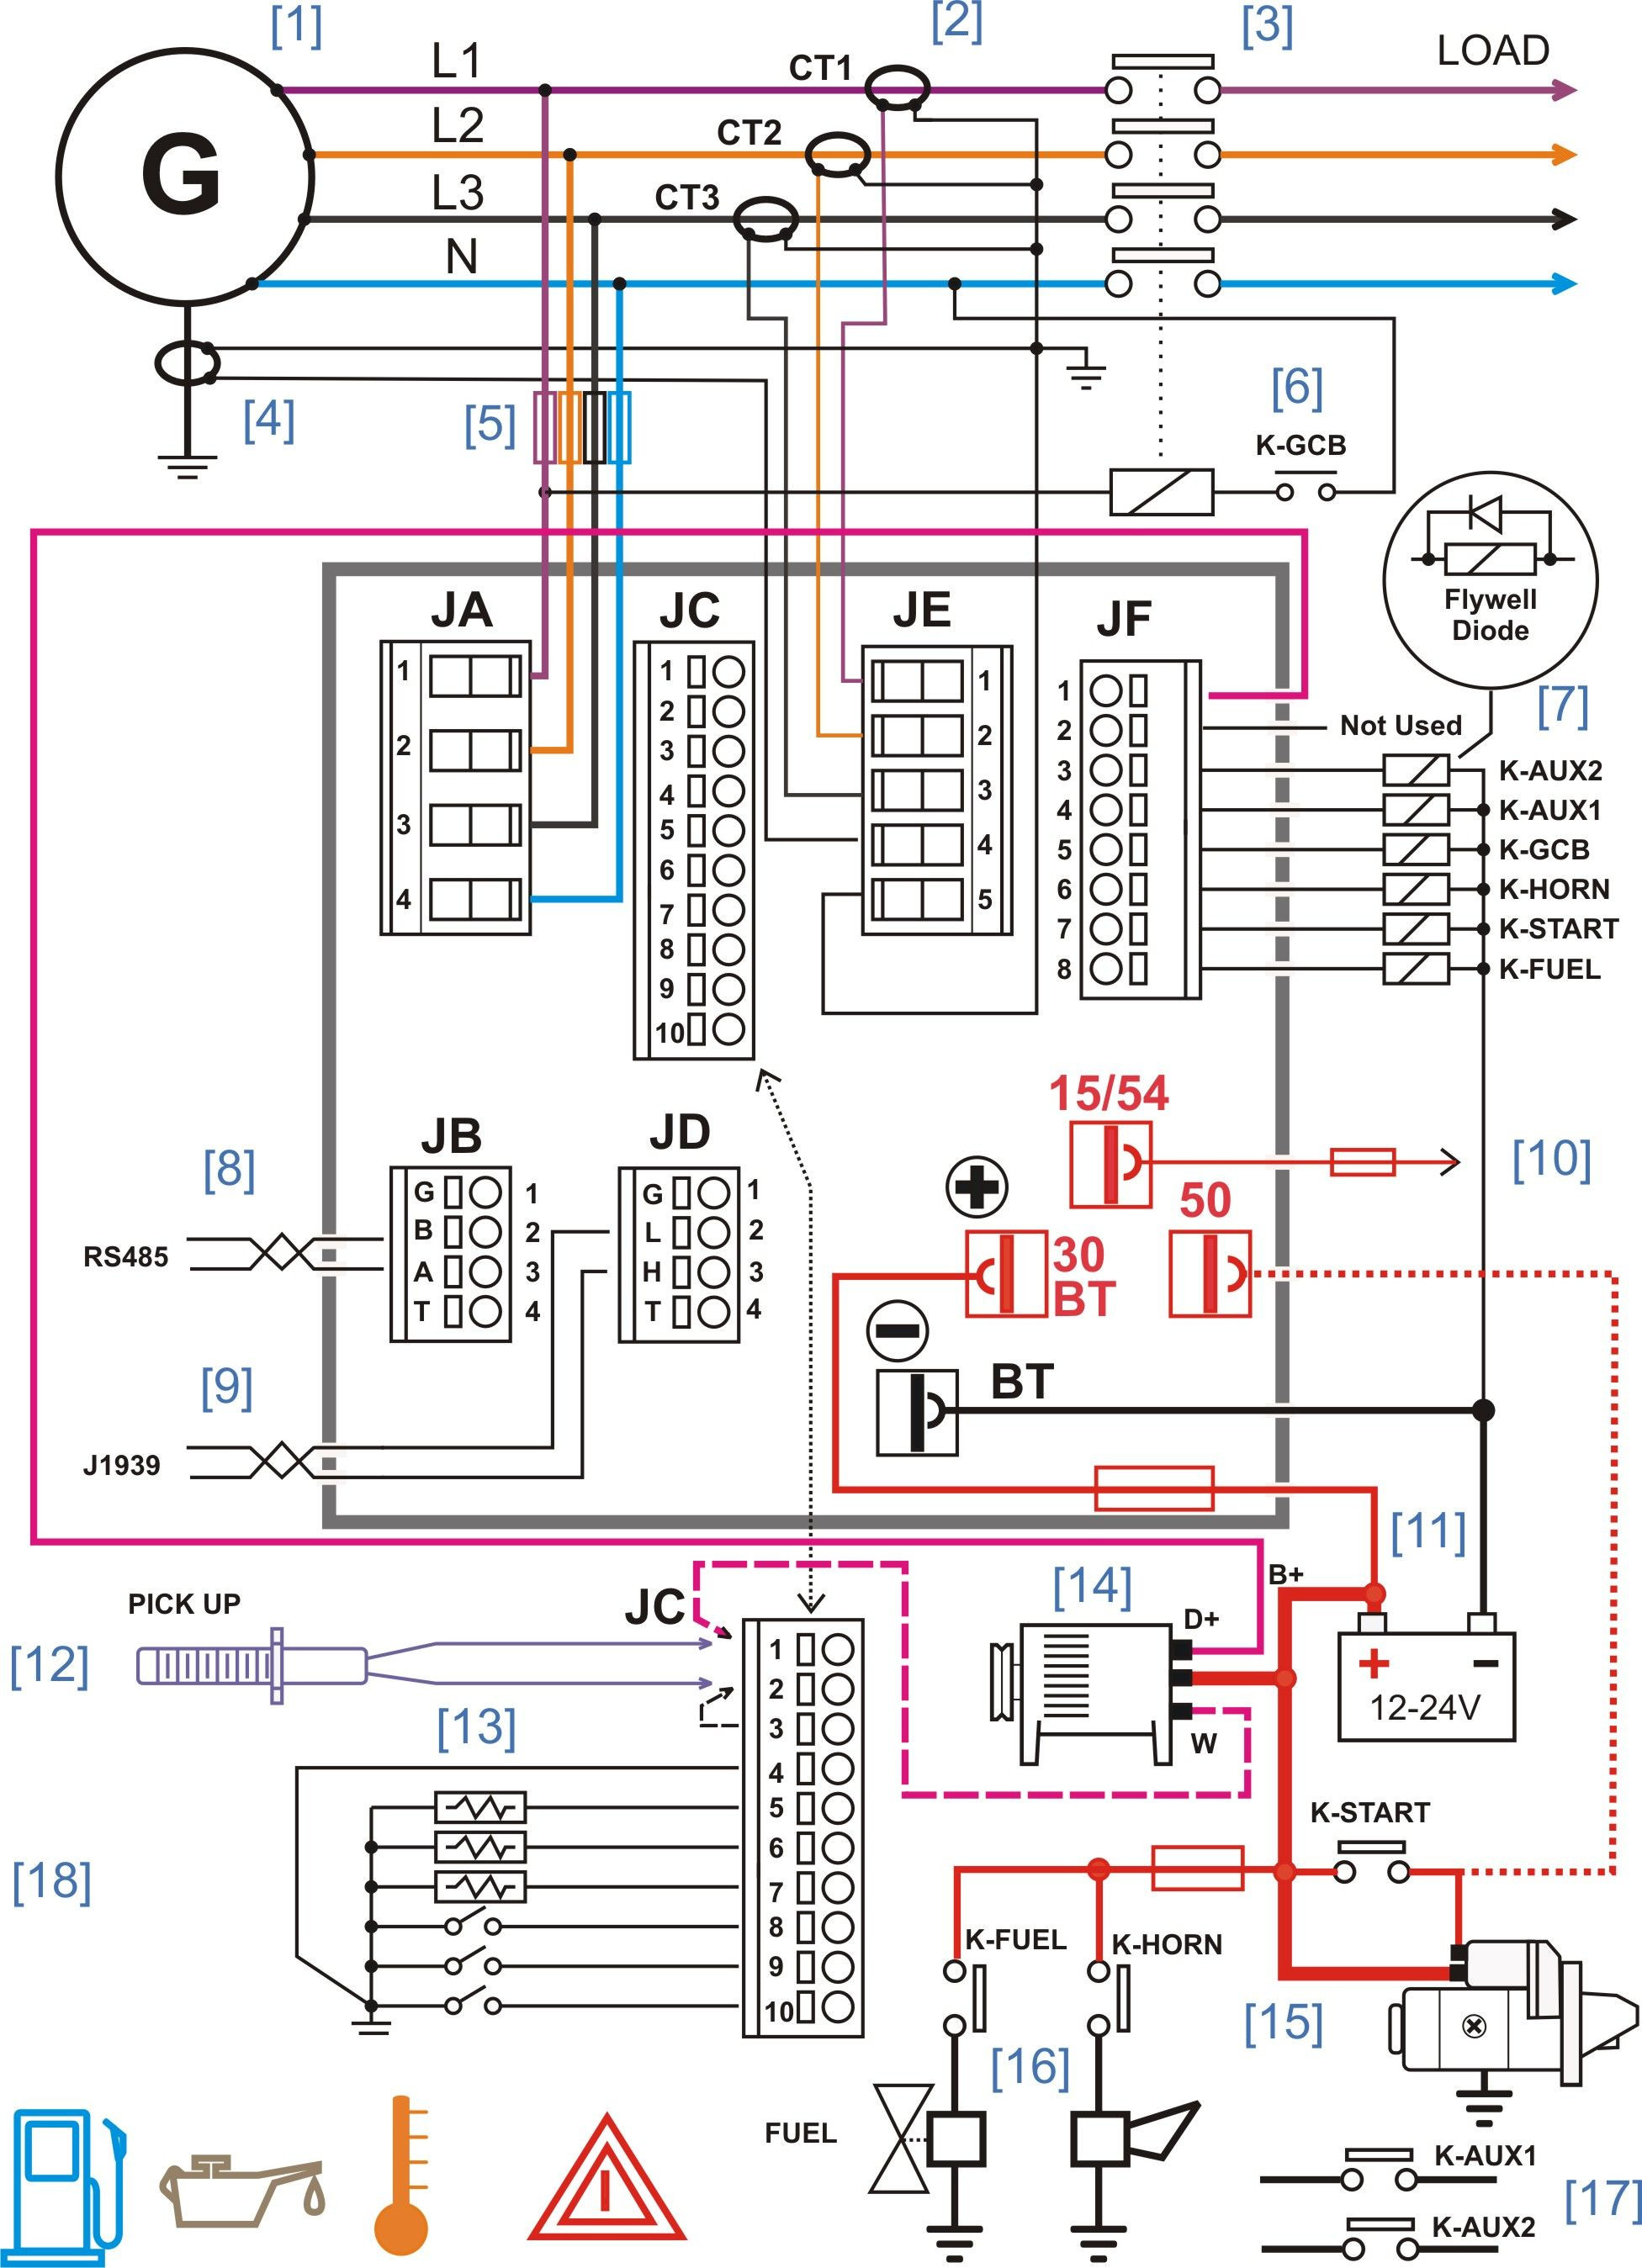 generator control panel wiring diagram Collection-Wiring Diagram For Auto Crane Inspirationa Diesel Generator Control Panel Wiring Diagram 15-q